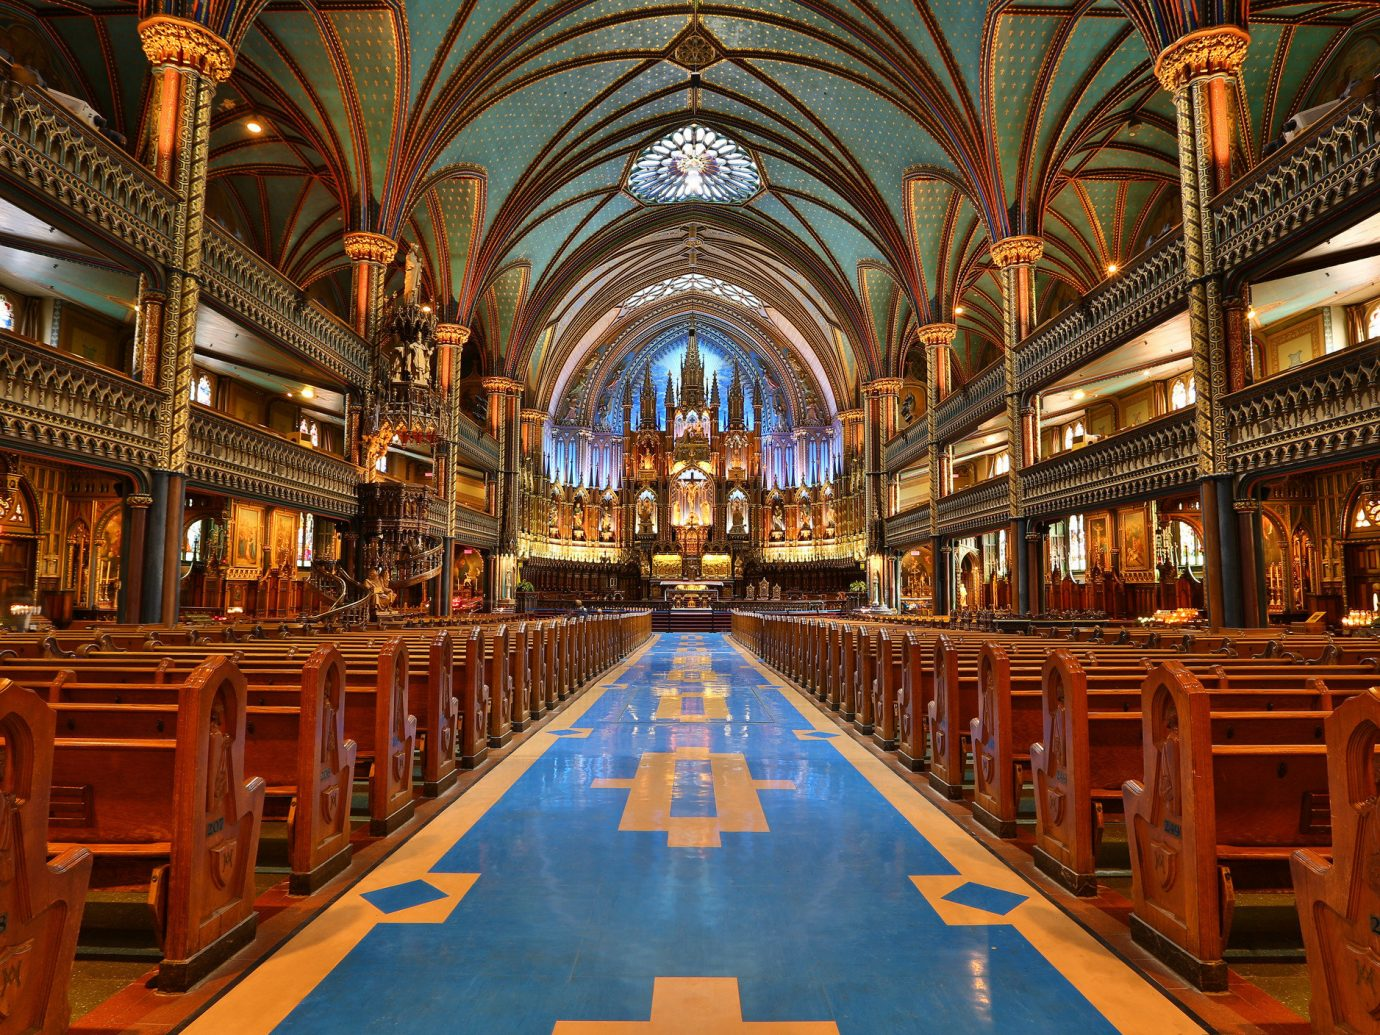 Canada Montreal Toronto Trip Ideas building indoor place of worship aisle Church cathedral